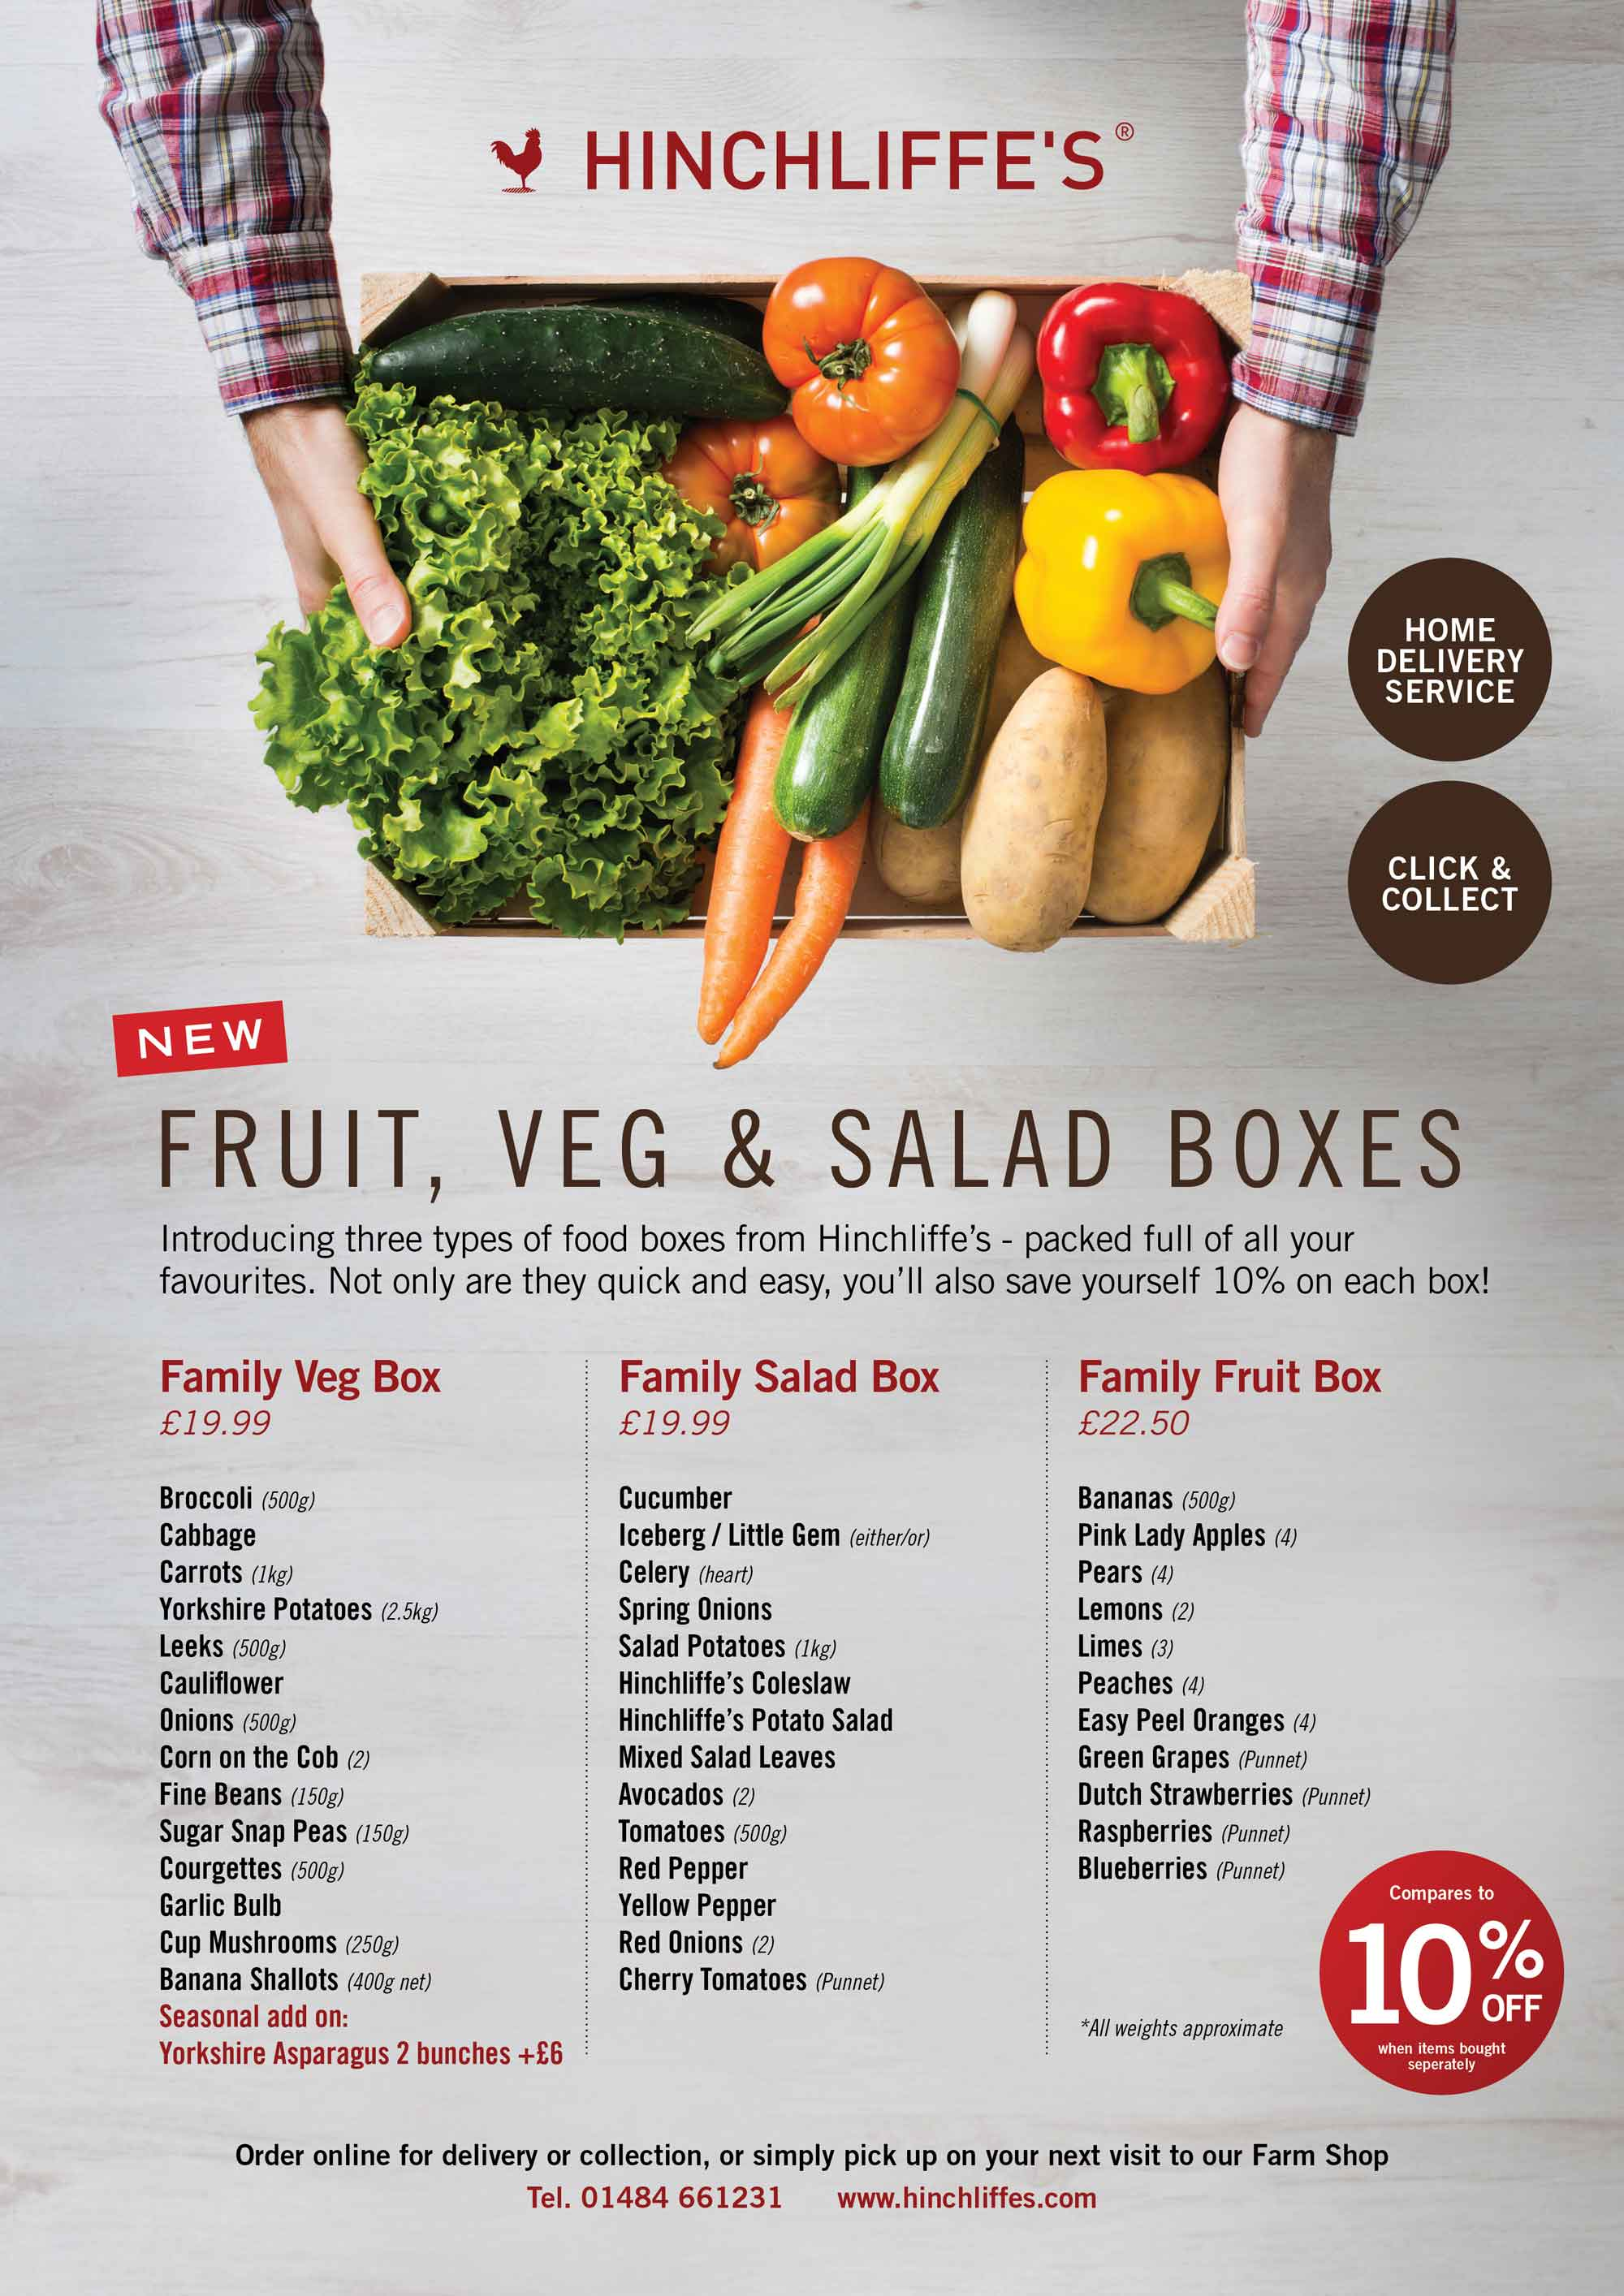 Fruit, Veg and Salad boxes contents